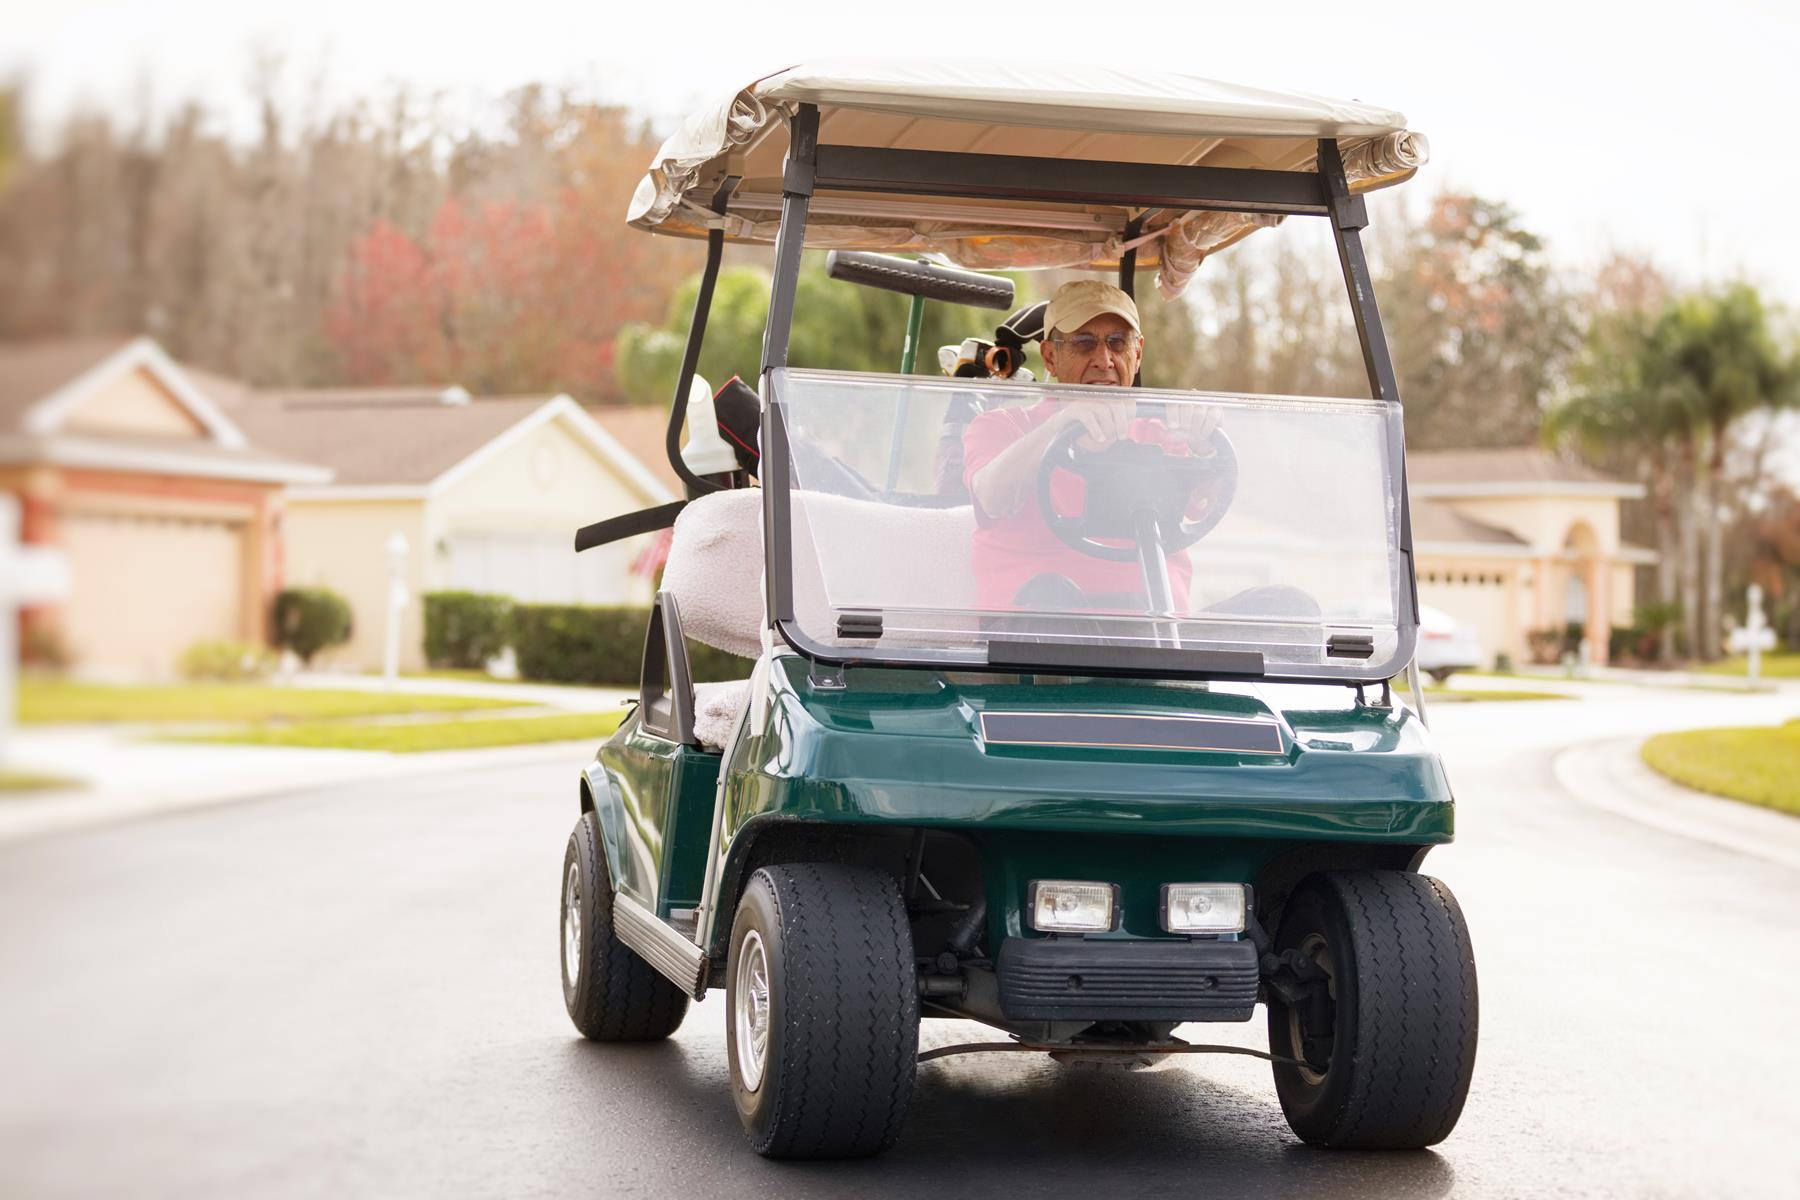 Maintain Your Golf Cart in 6 Simple Steps